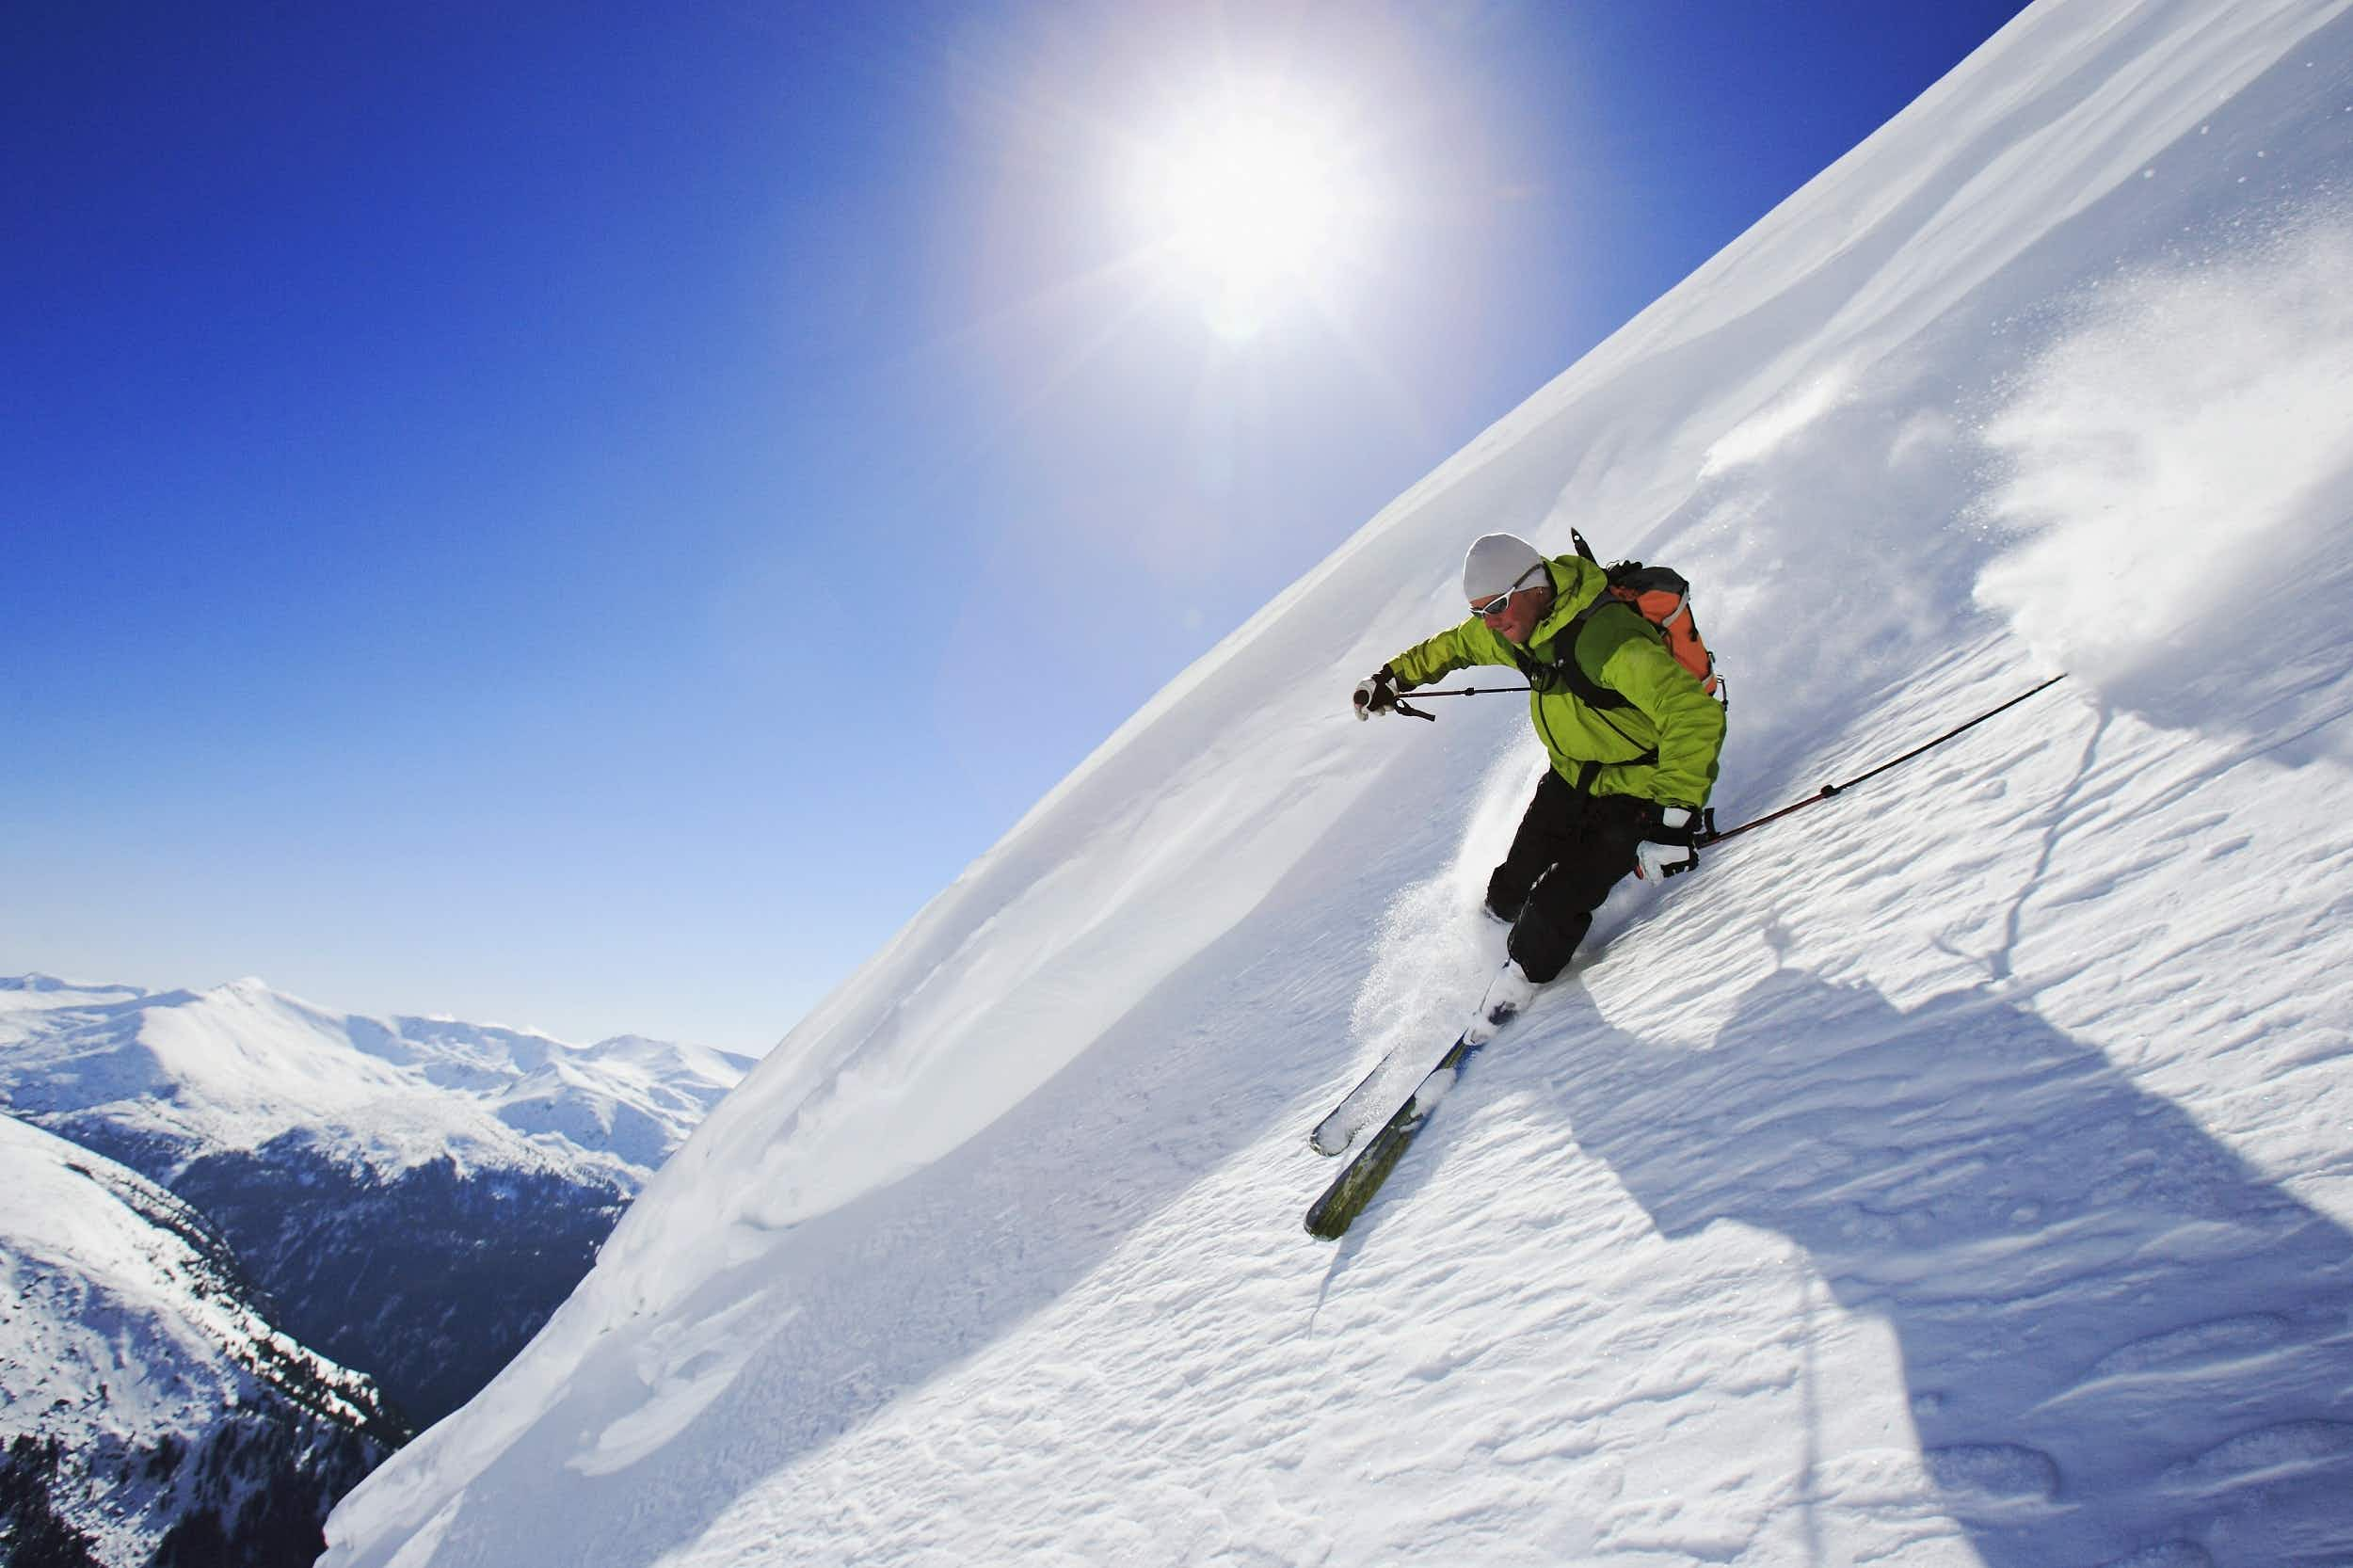 Steep slopes and the ability to make fresh tracks await in the Rila Mountains © Bernard van Dierendonck / LOOK-foto